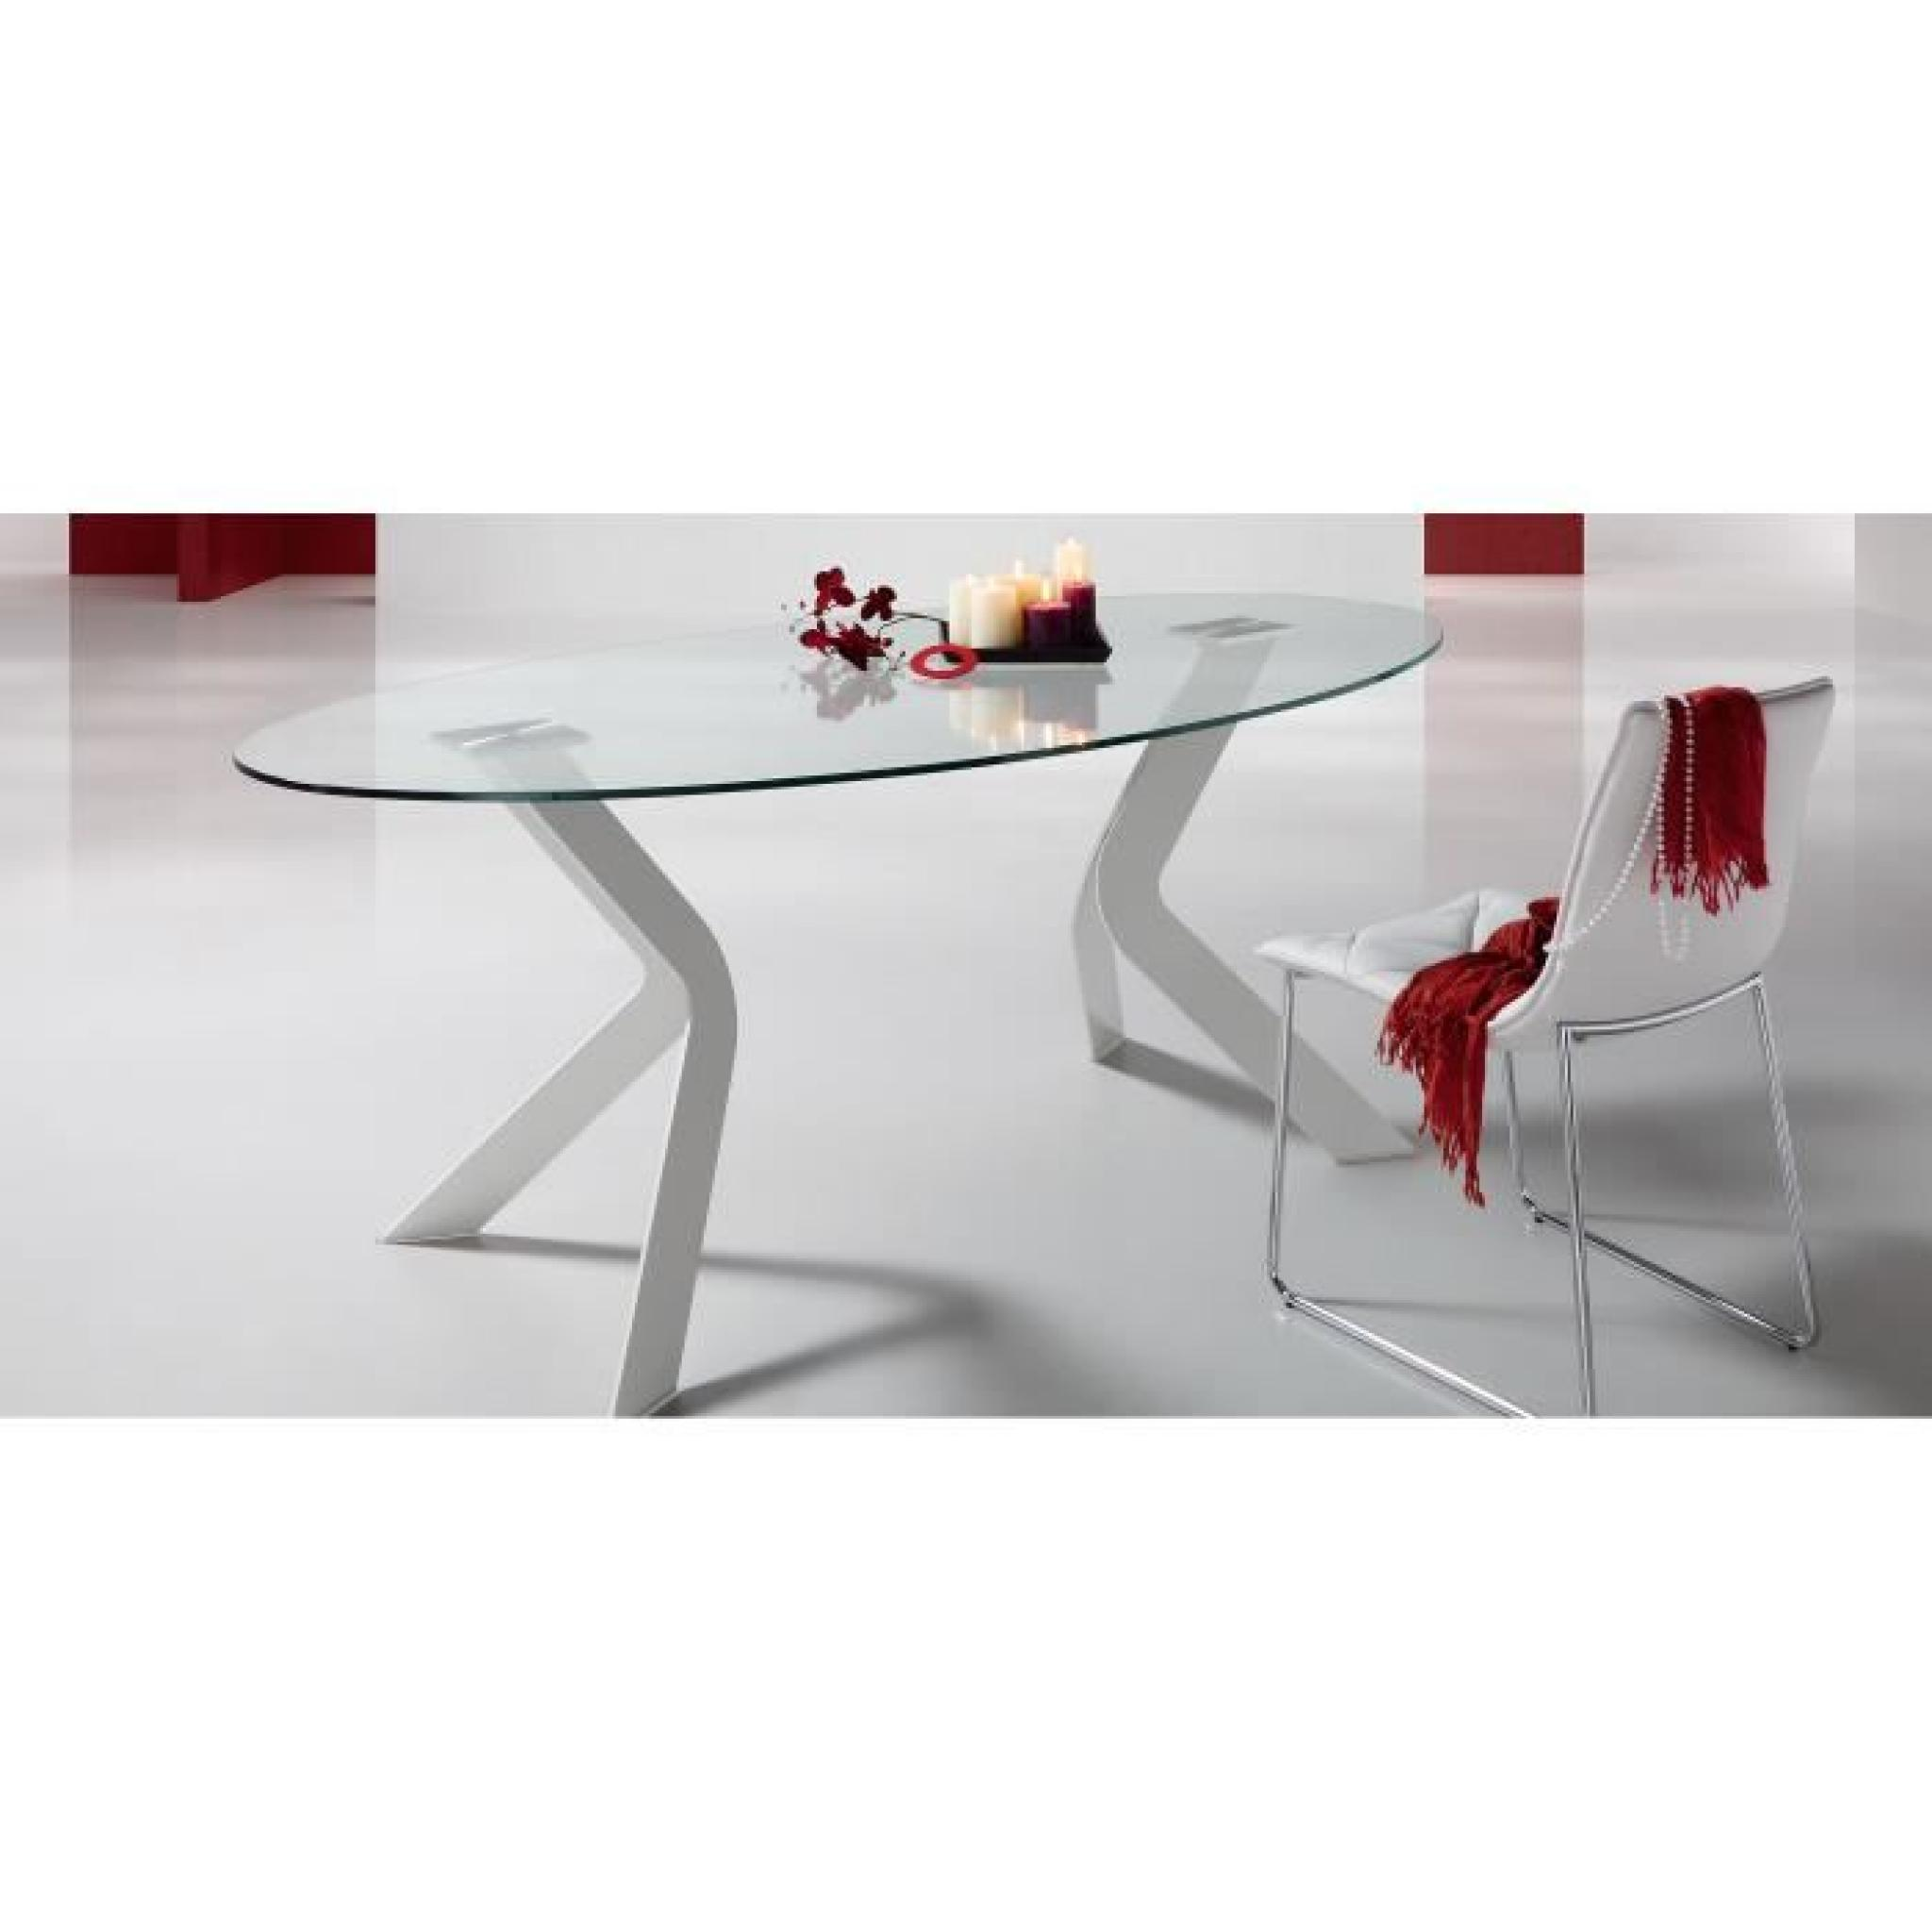 table ovale westport 200x110 cm argent achat vente table salle a manger pas cher couleur et. Black Bedroom Furniture Sets. Home Design Ideas